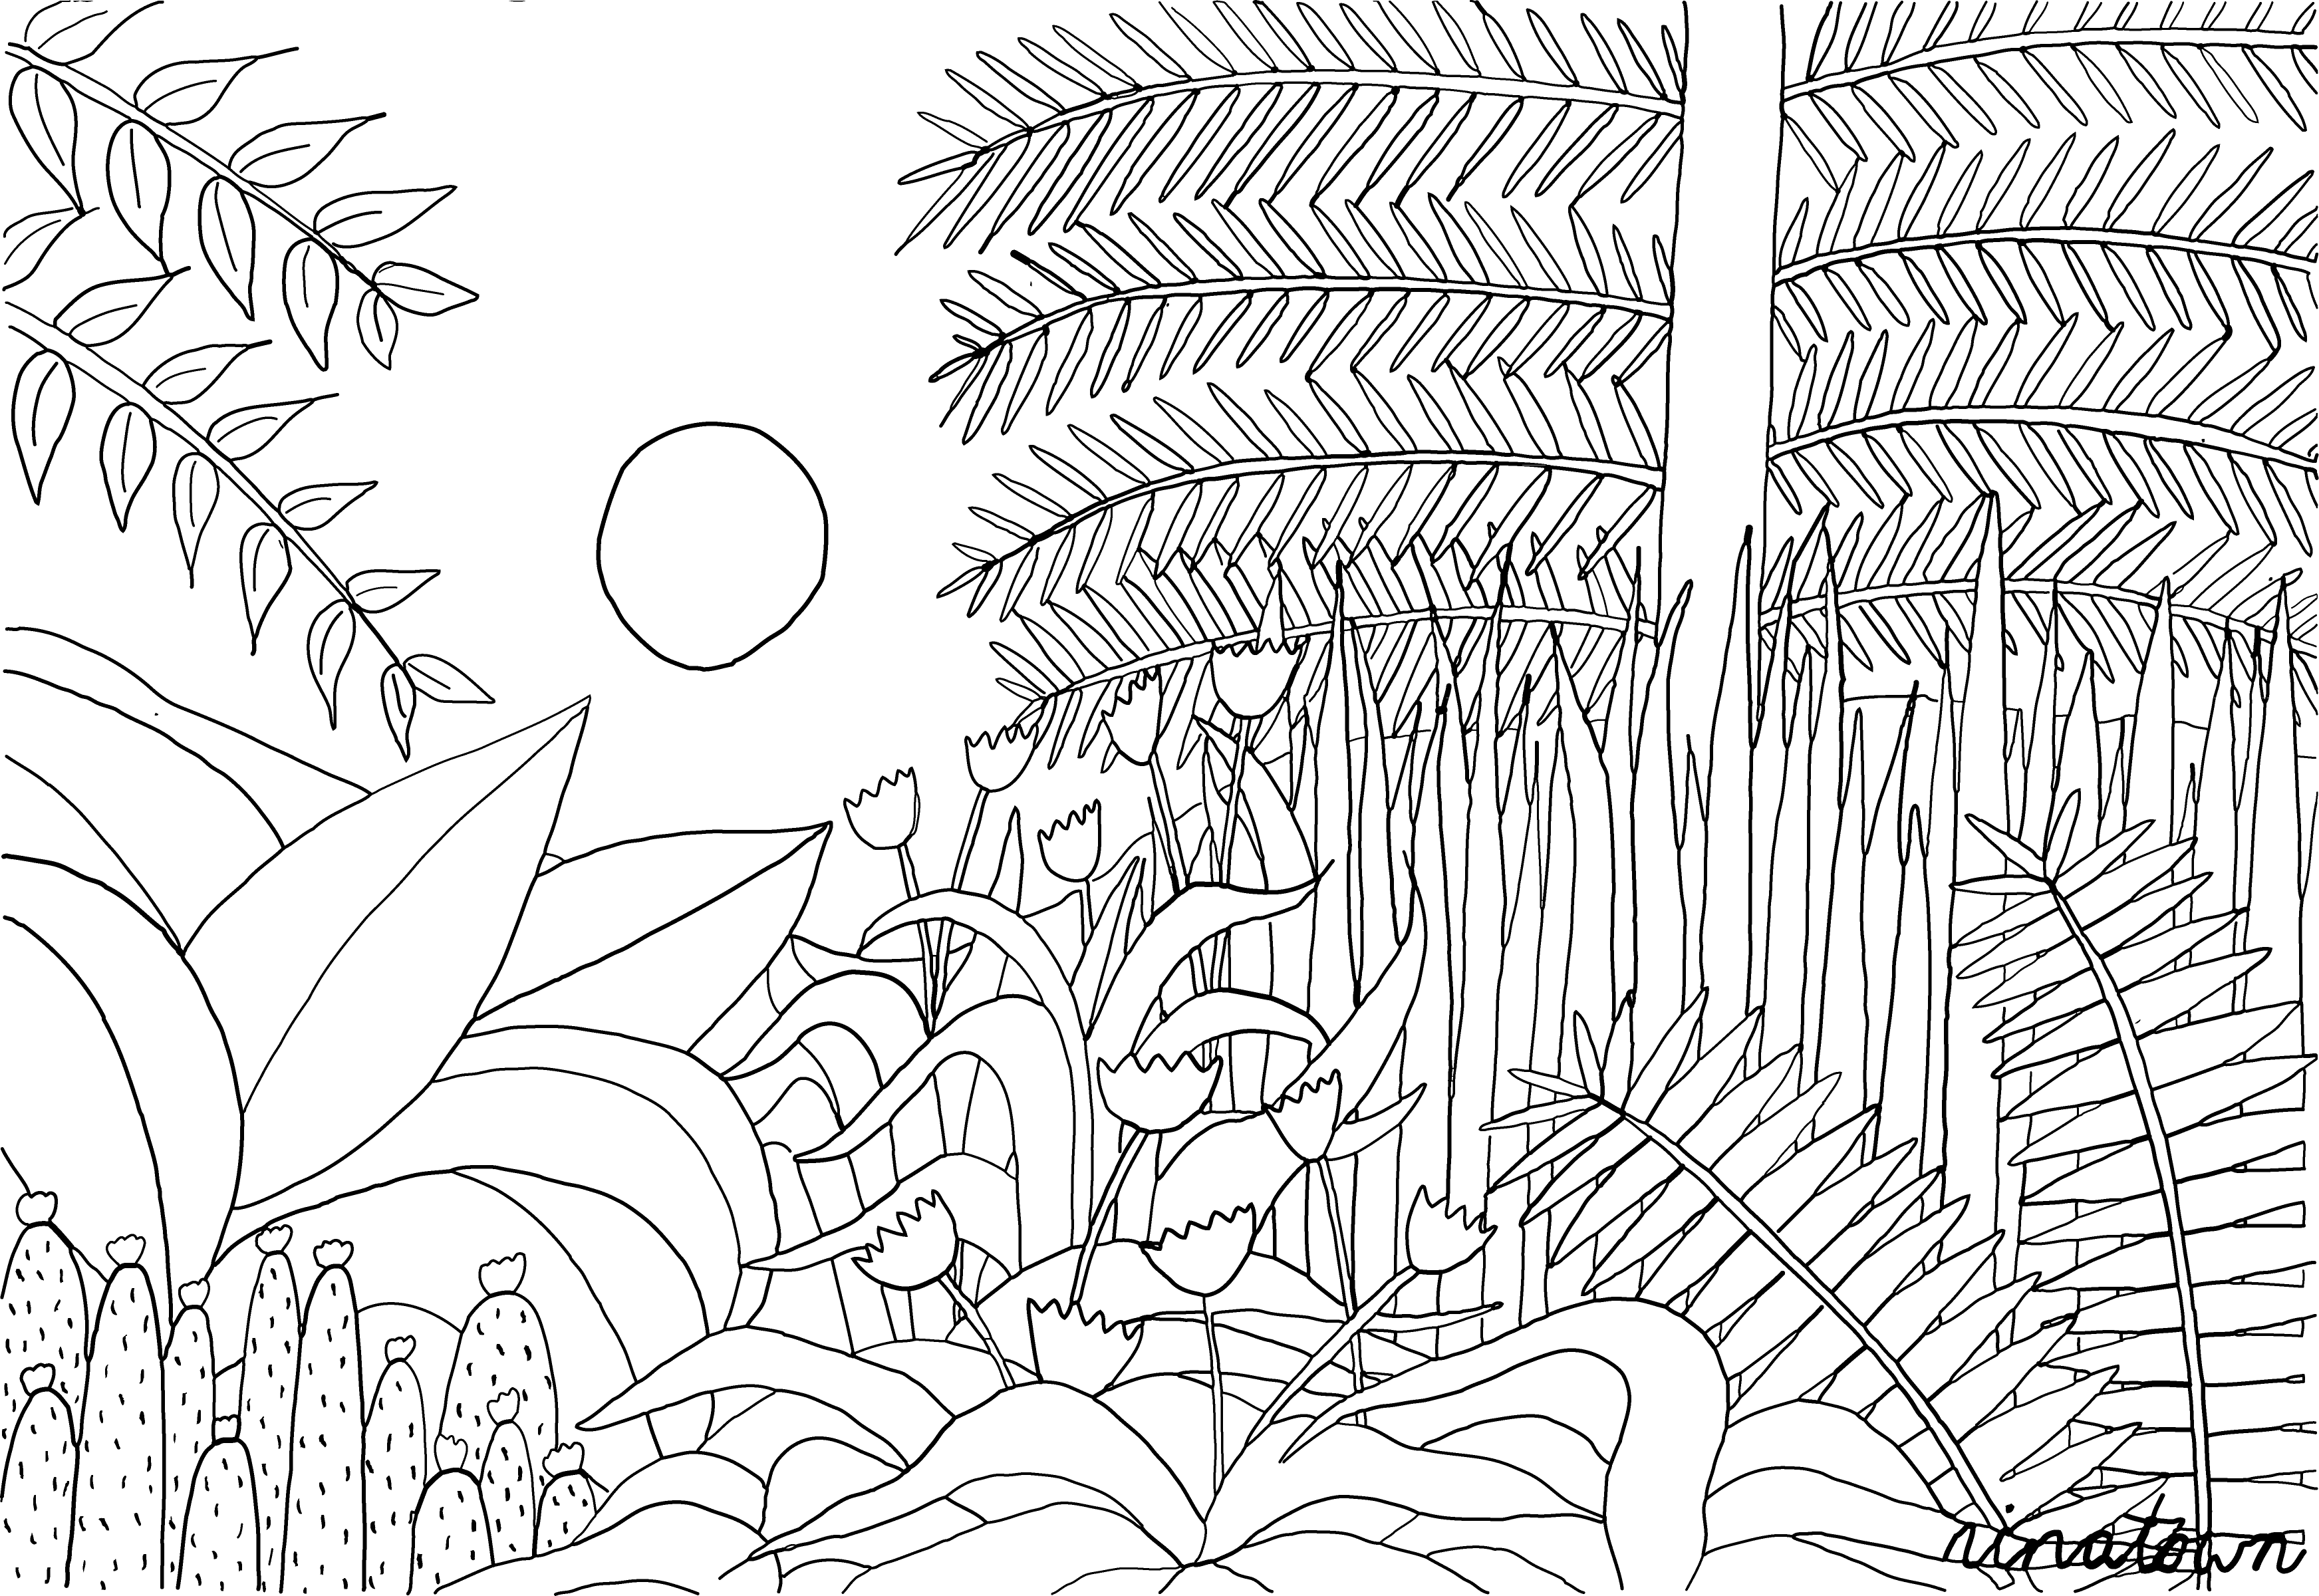 henri rousseau coloring pages quotfantastic jungles of henri rousseauquot coloring page rousseau henri pages coloring